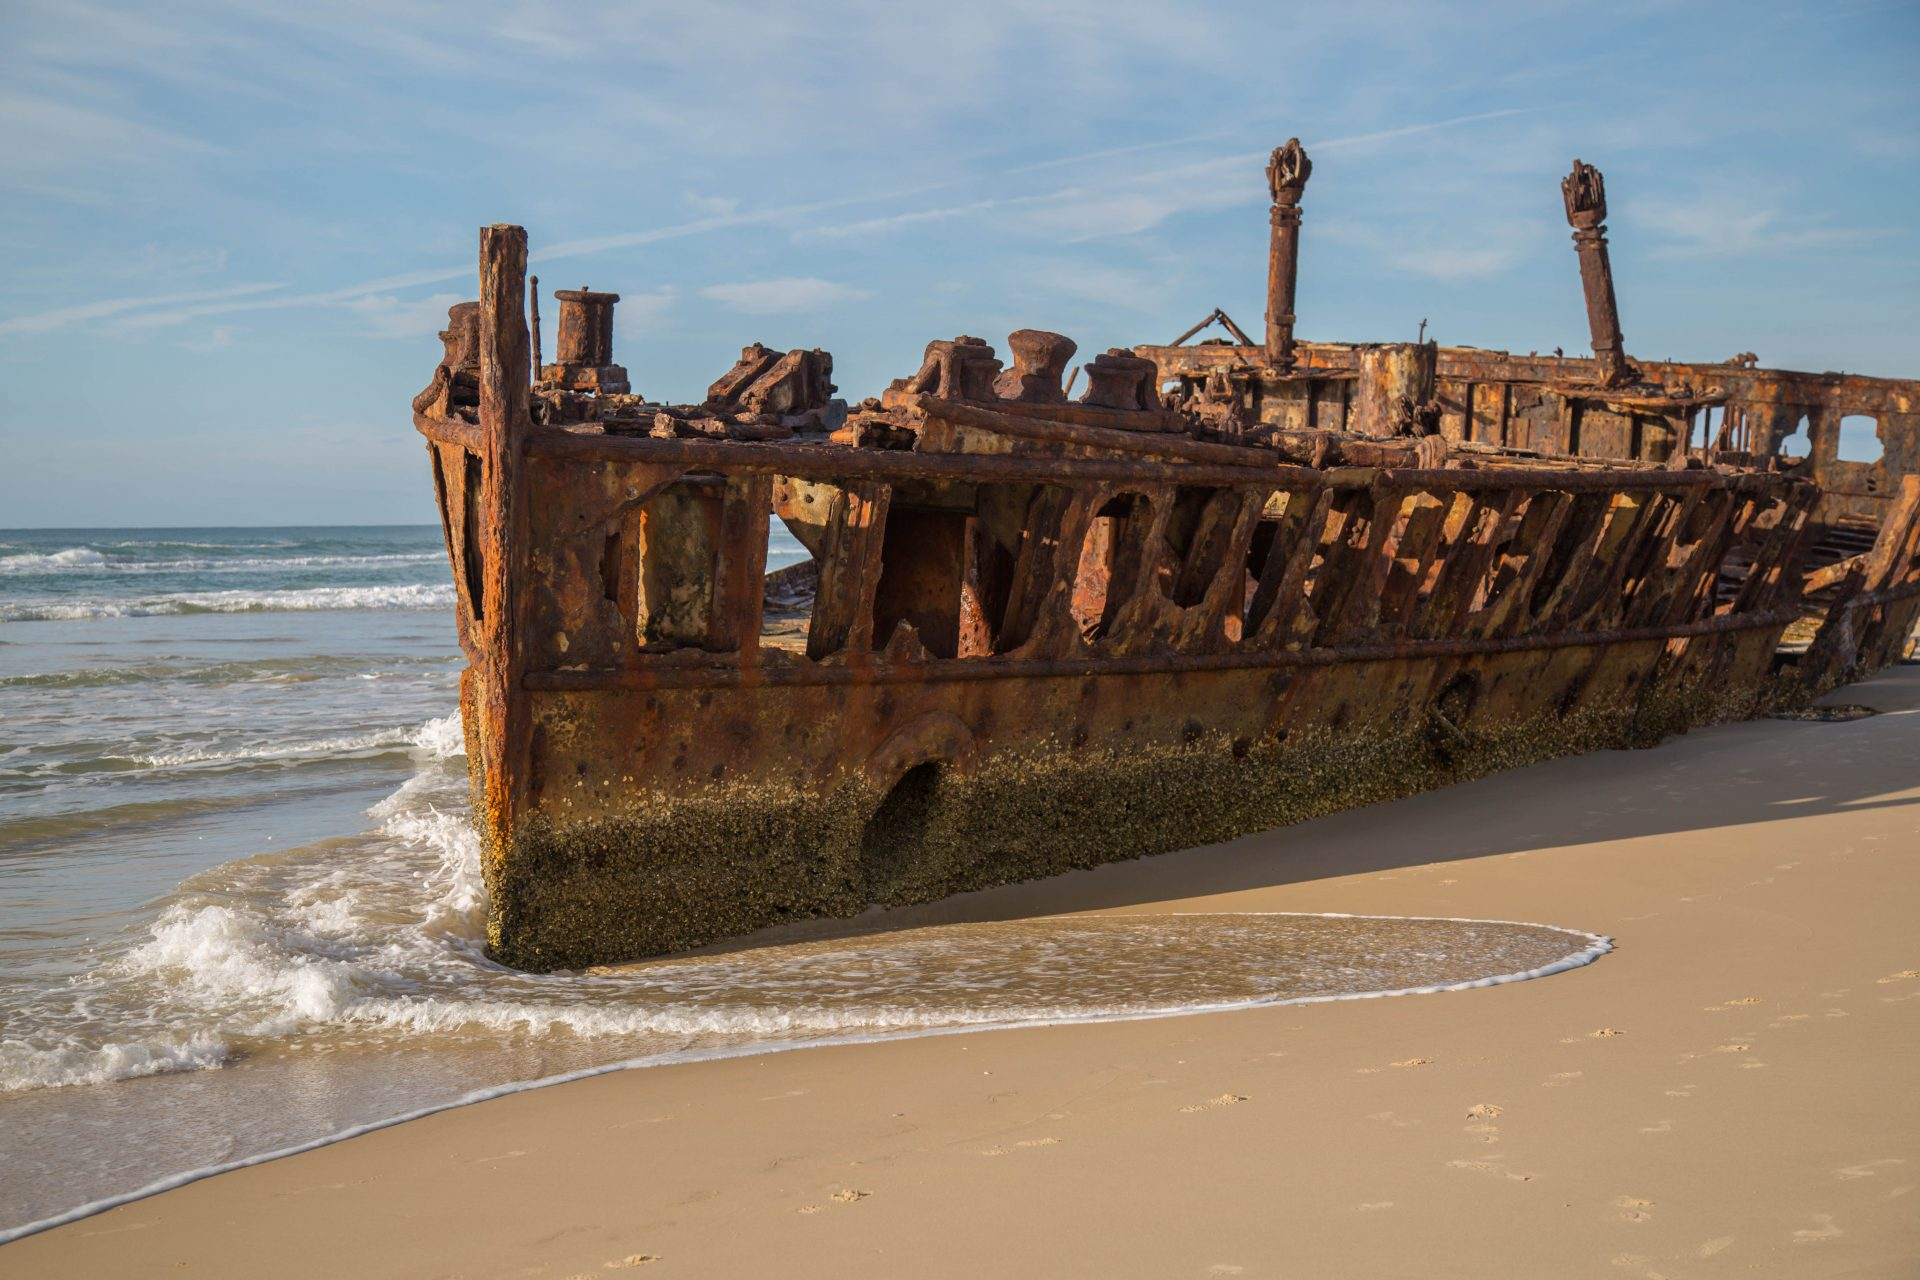 Wreck of the Maheno, stranded in July 1935, Fraser Island